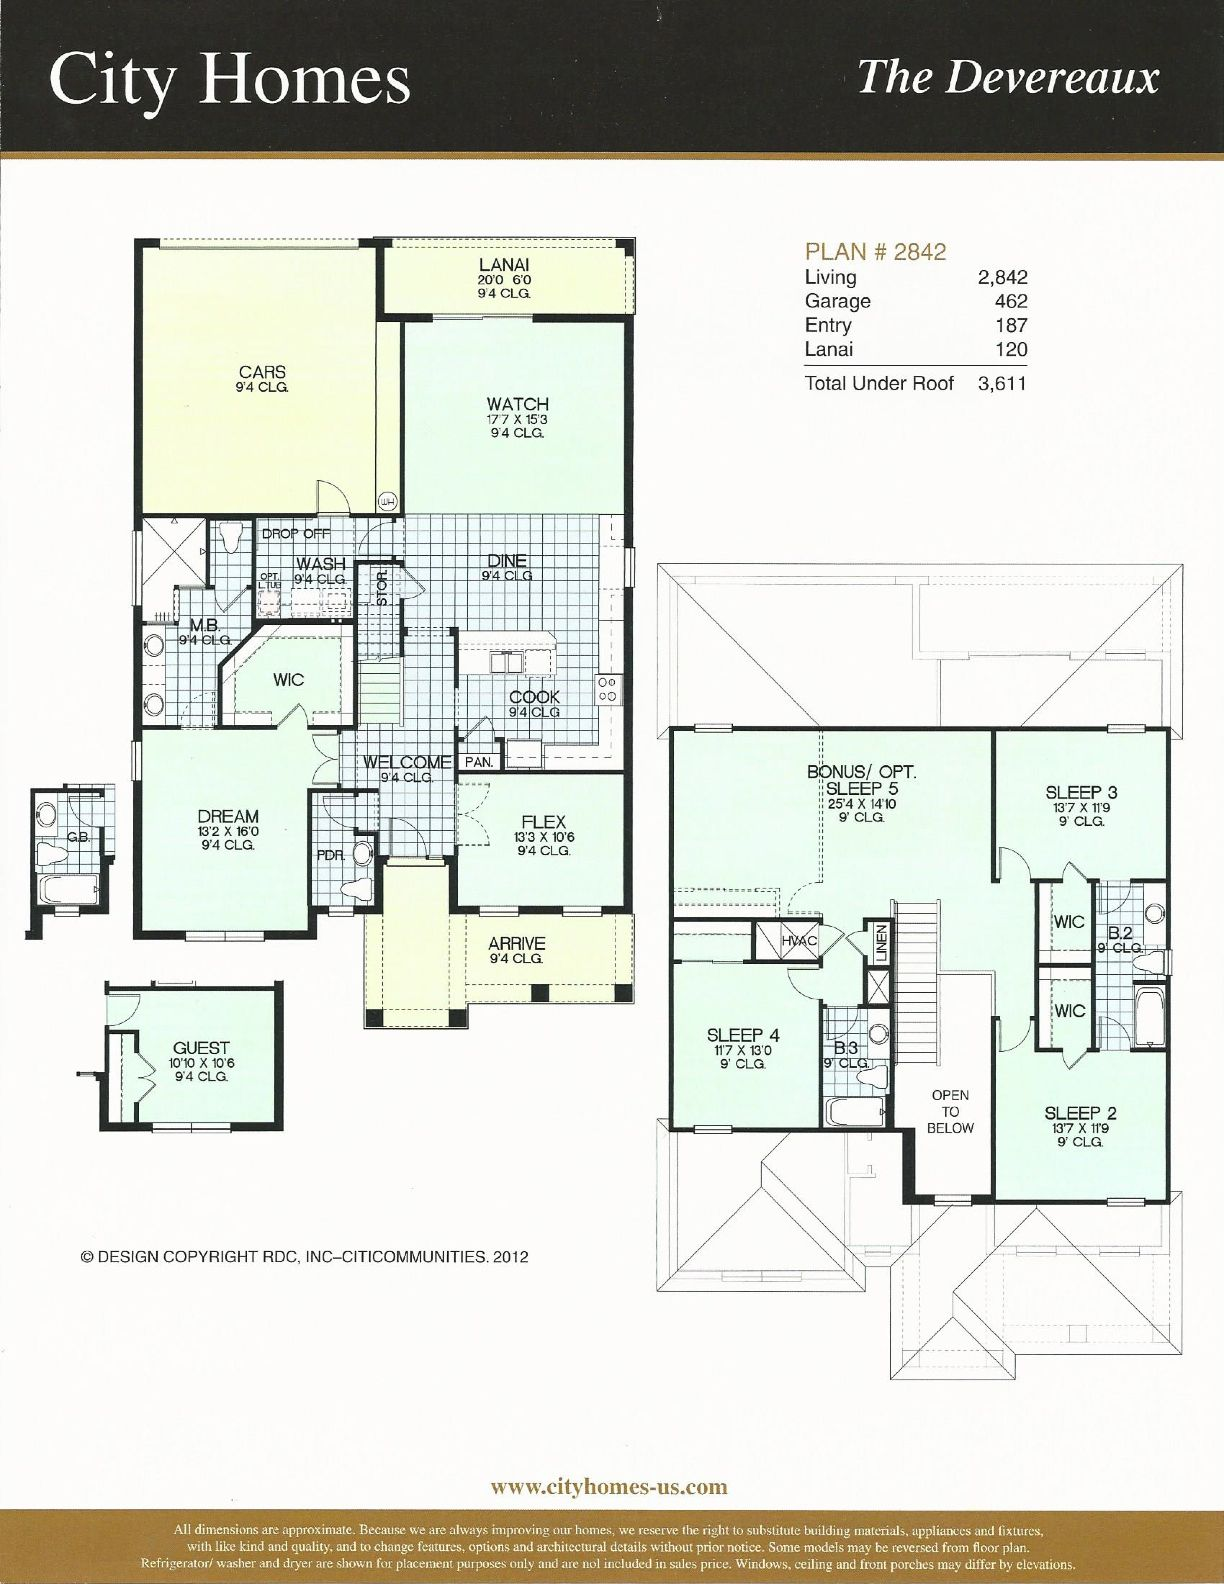 Windermere Terrace City Homes Devereaux Floor Plan in Windermere FL